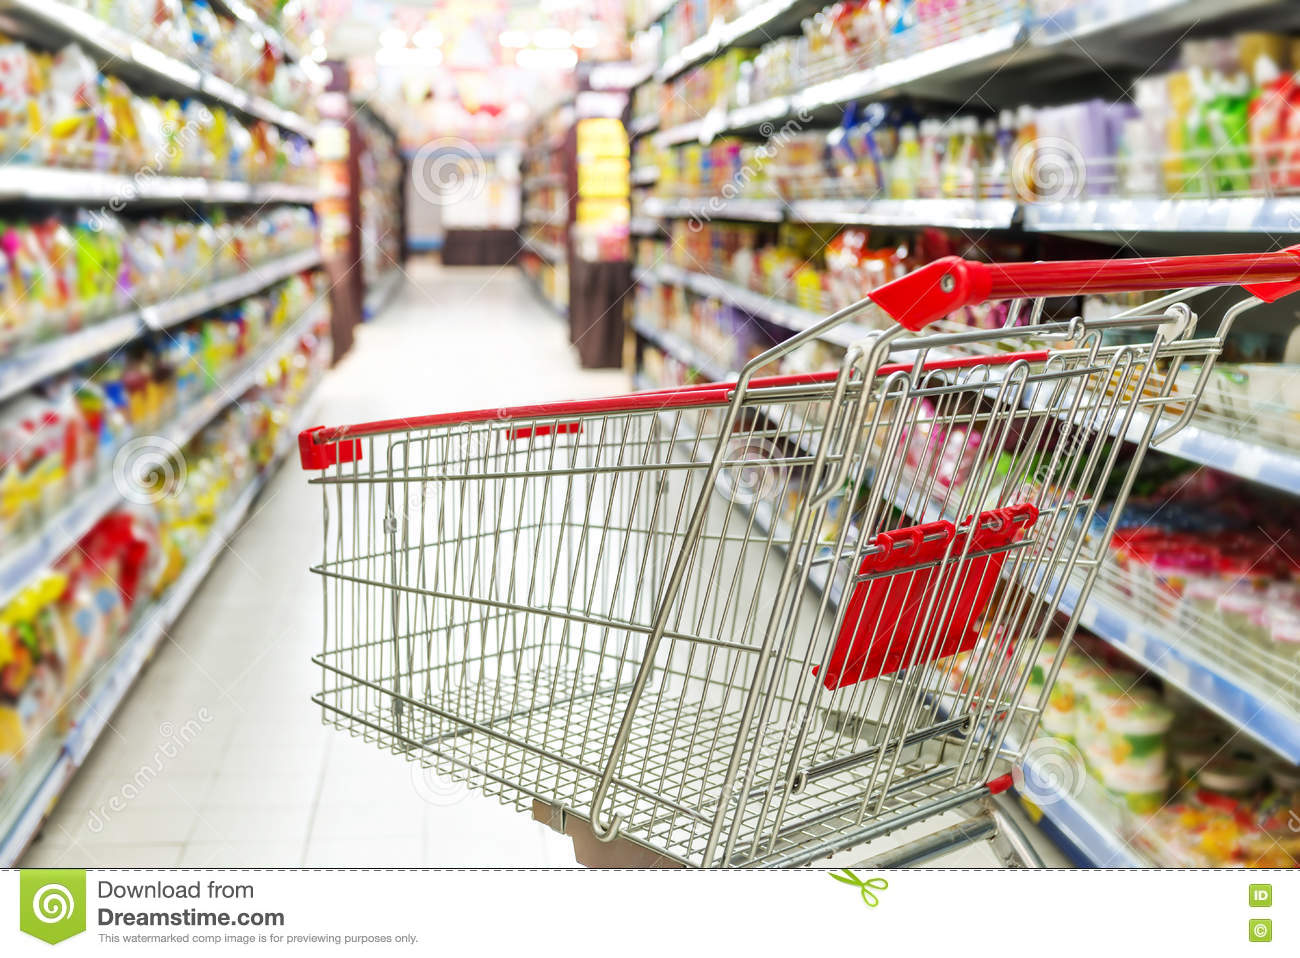 A shopping cart ready for purchase